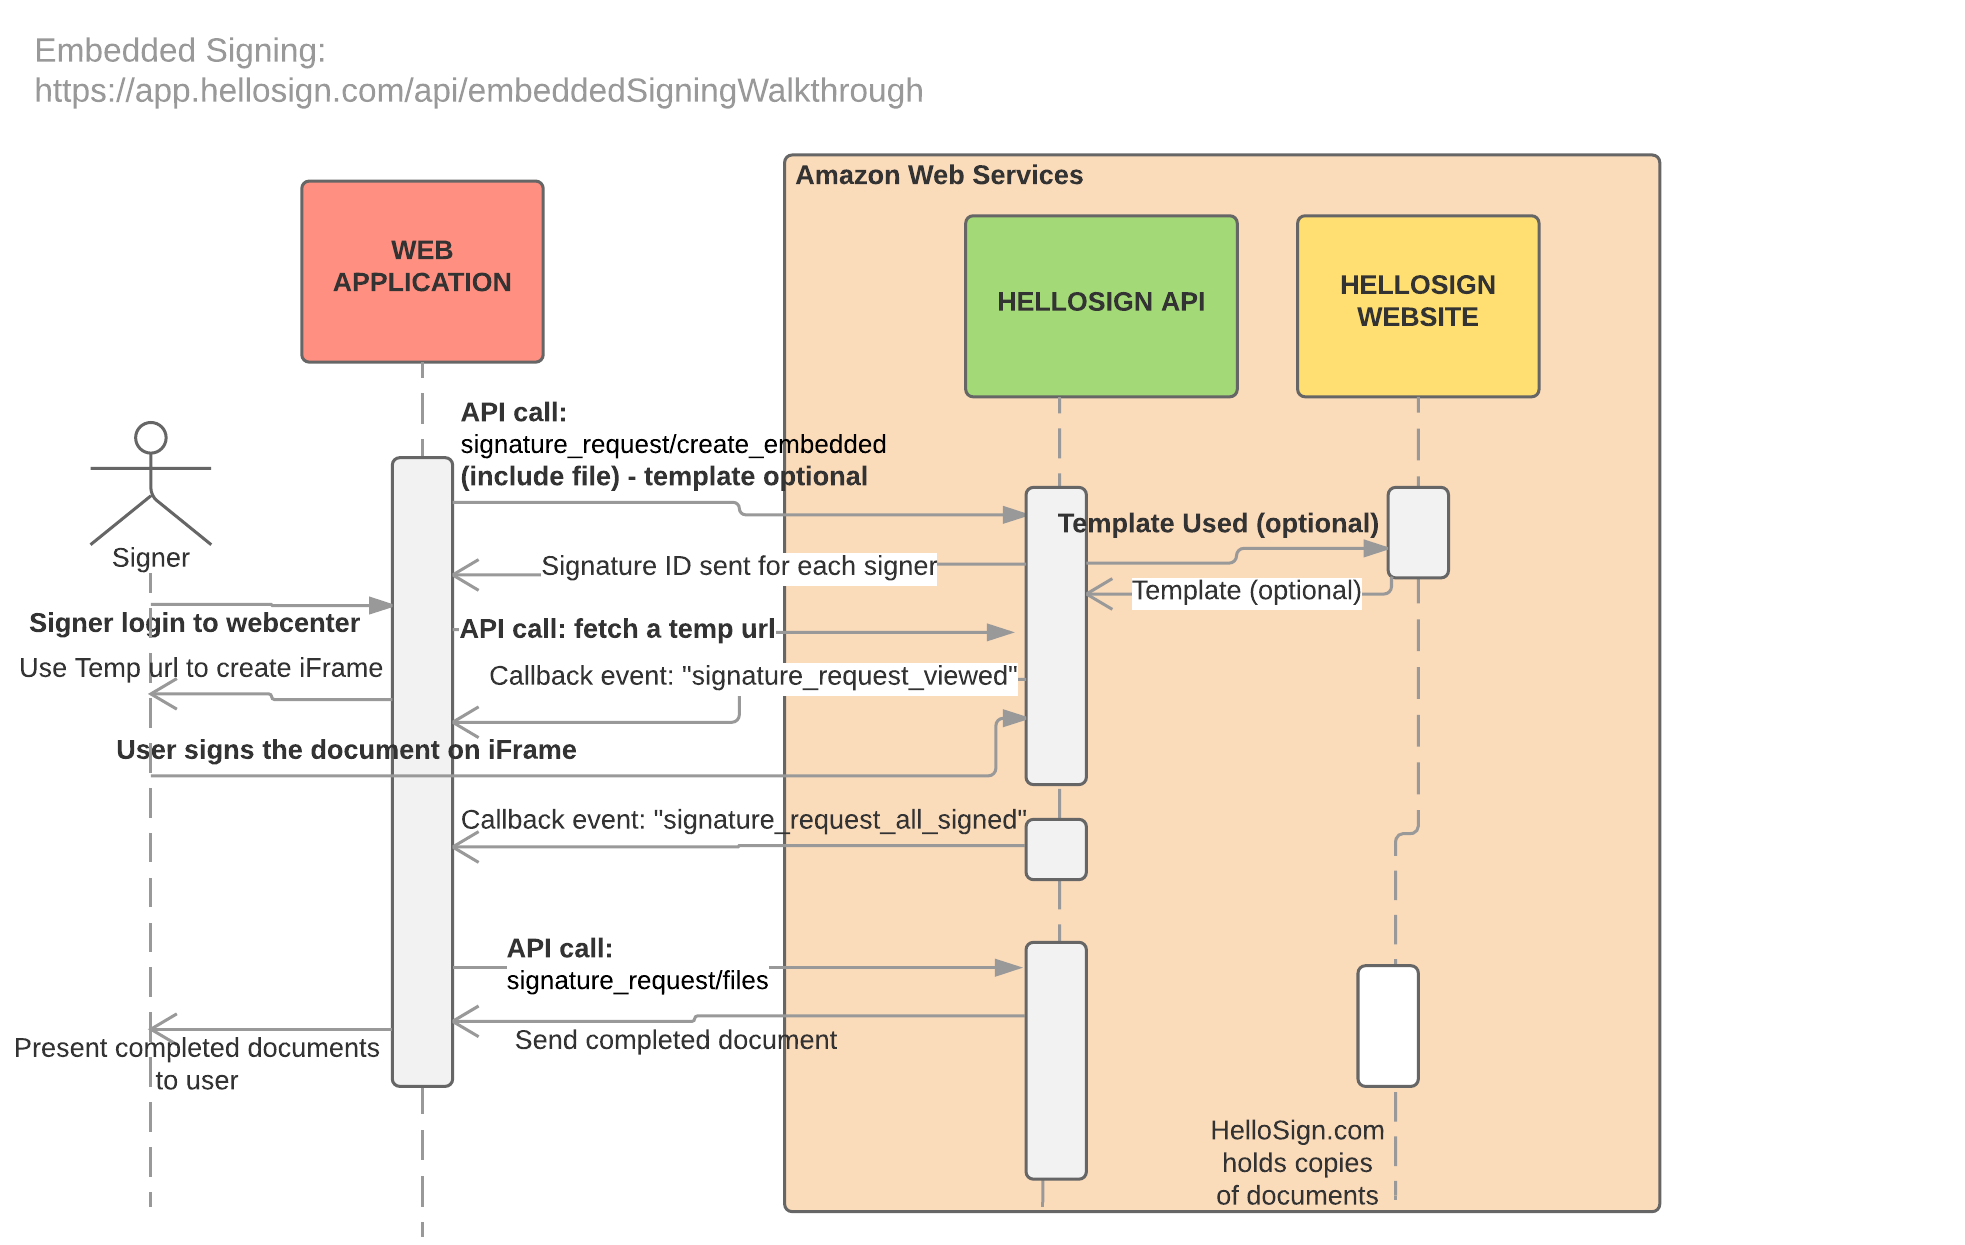 medium resolution of image result for how to represent an api call in sequence diagram